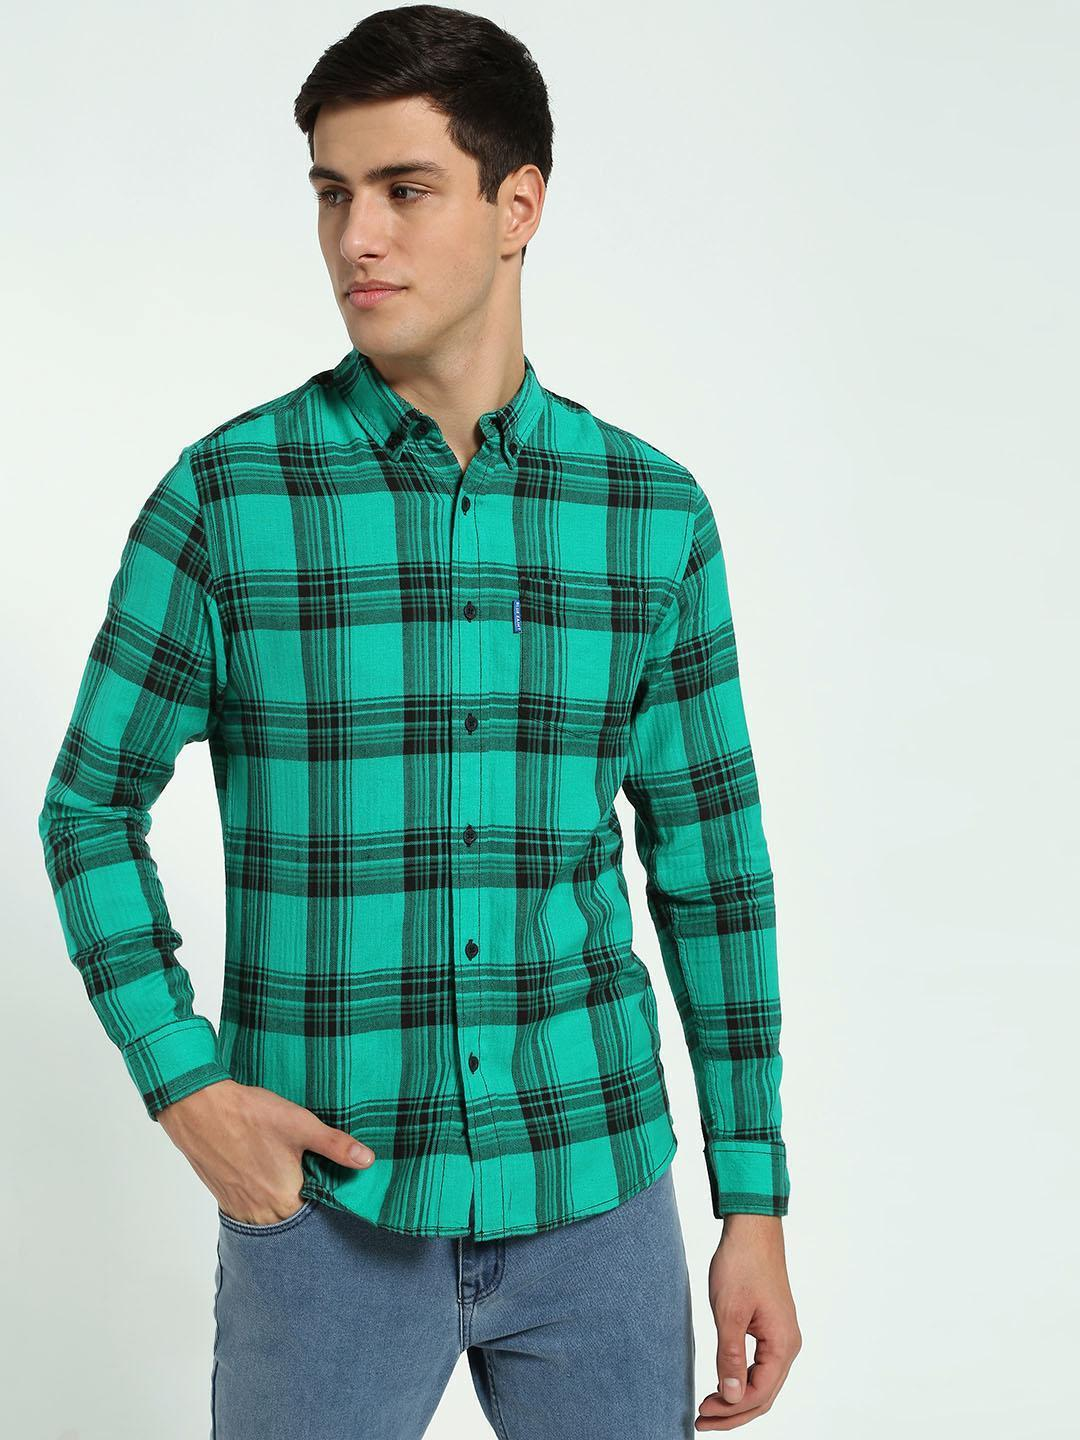 Blue Saint Green Plaid Check Long Sleeve Shirt 1